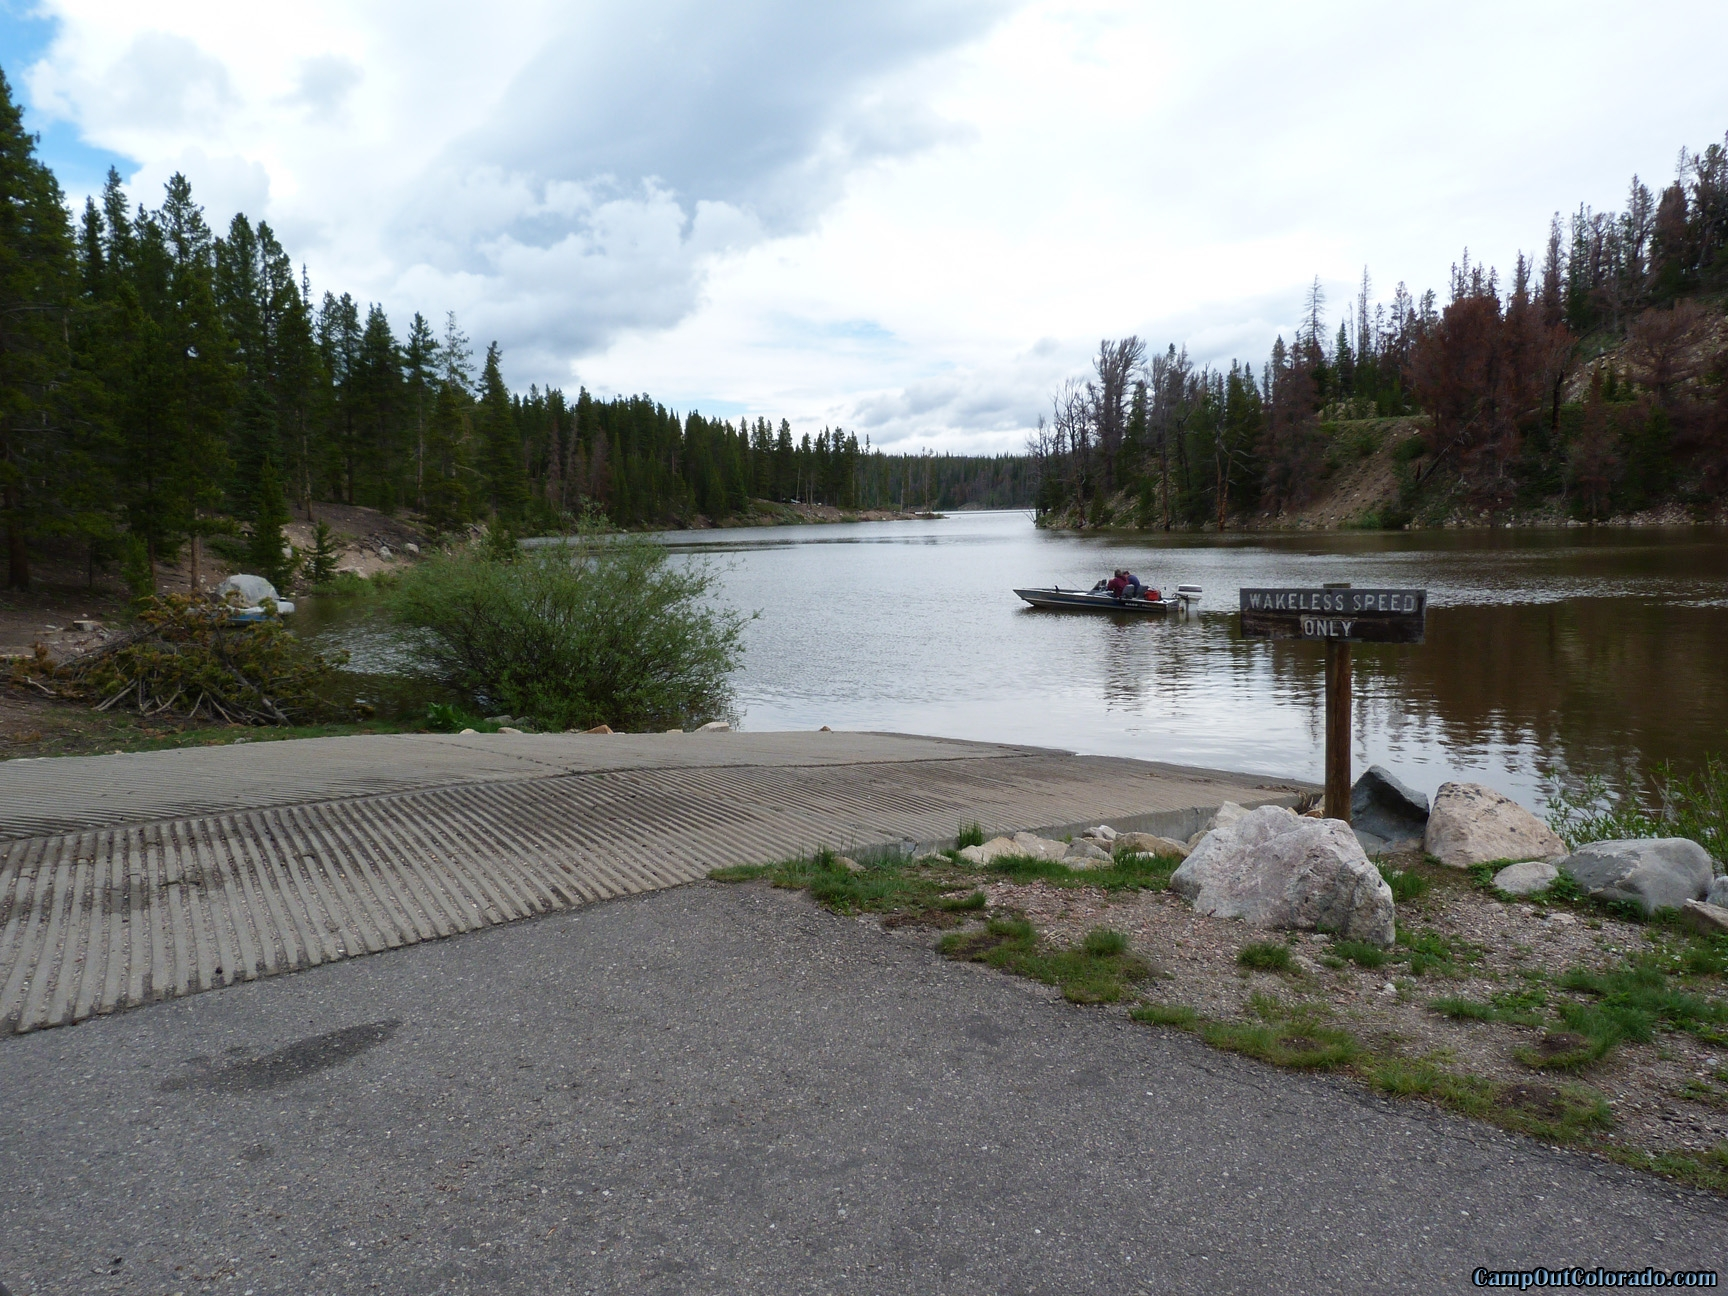 camp-out-colorado-chambers-lake-campground-boat-ramp-wakeless